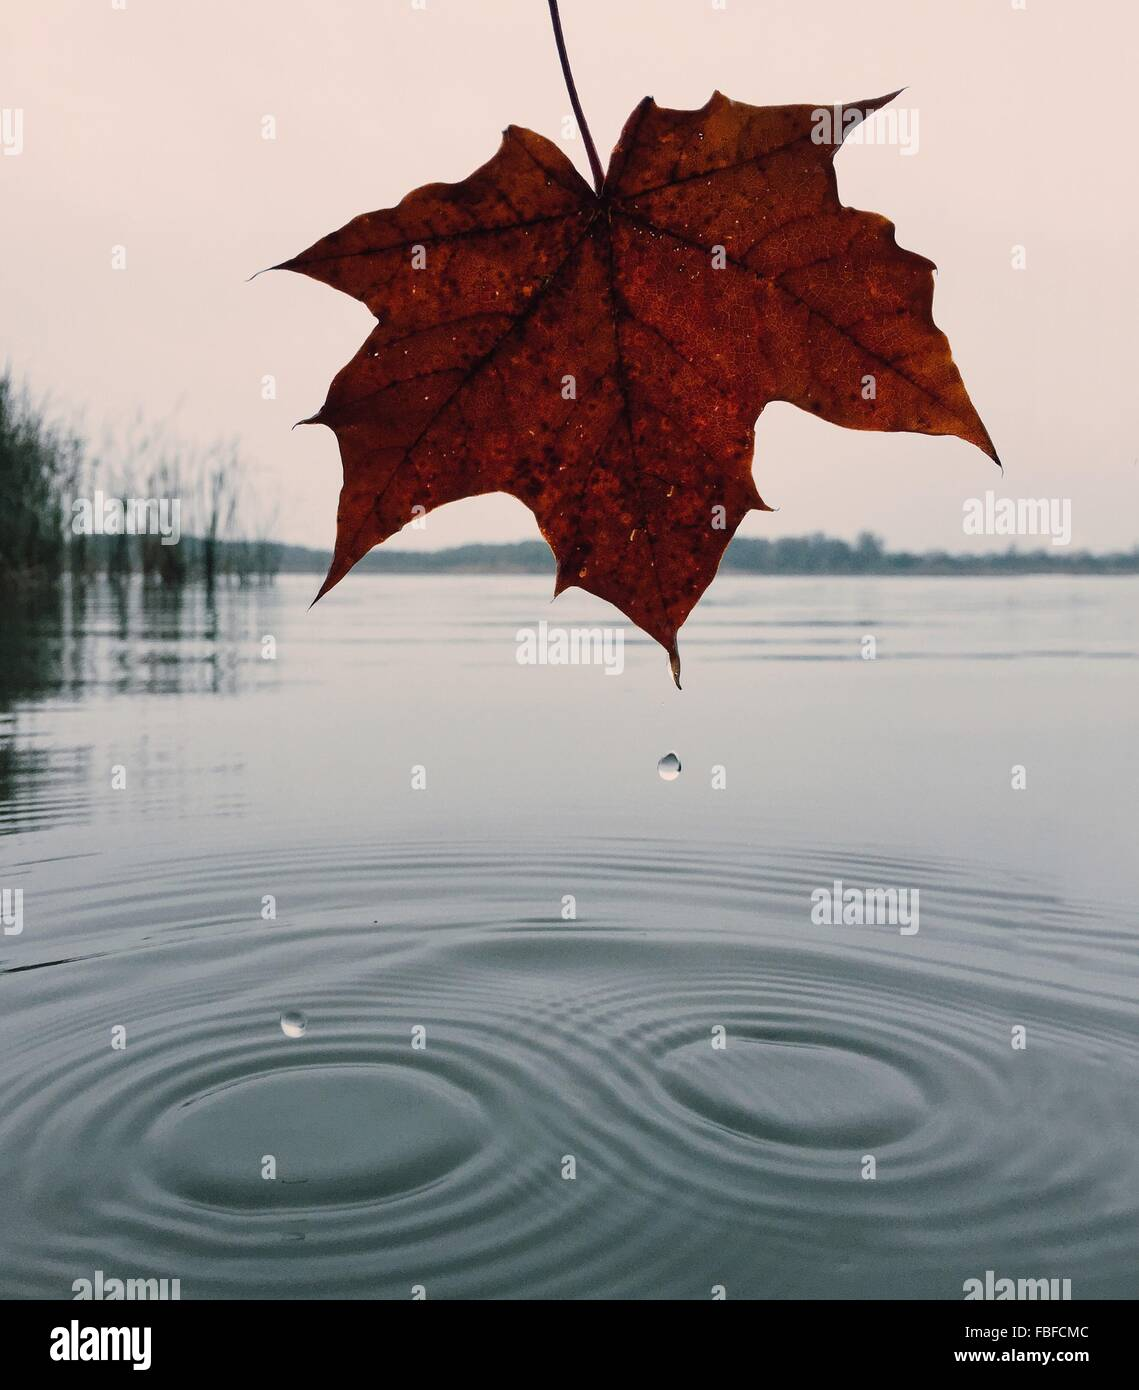 Dry Maple Leaf Over Lake Against Sky During Autumn - Stock Image